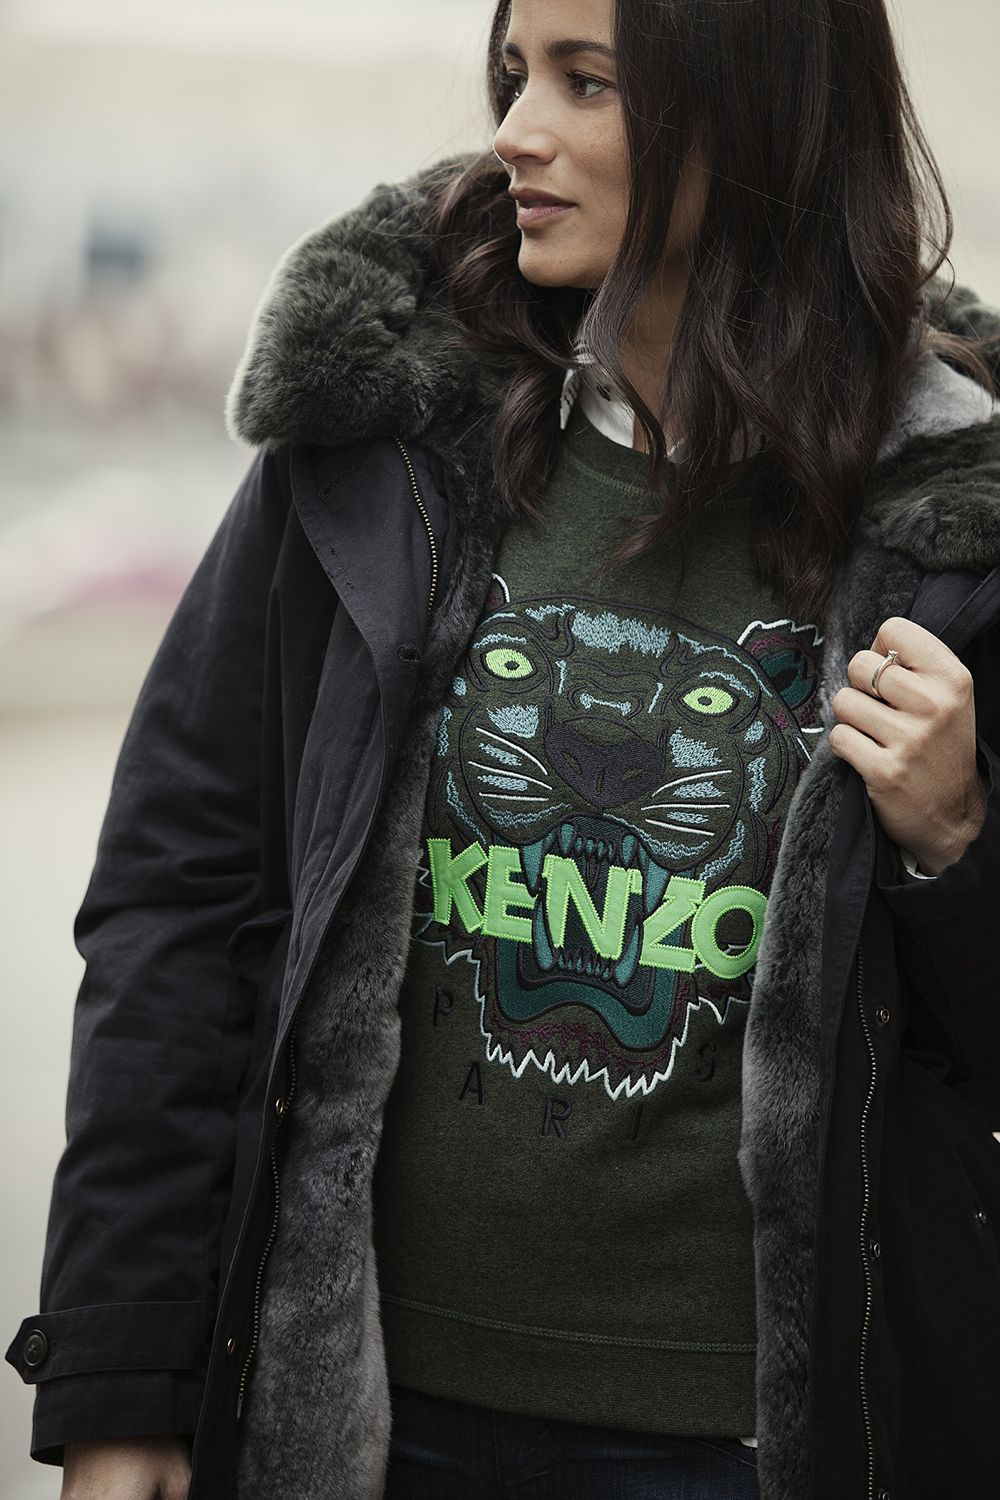 Streetstyle 2015 new fall wintercollection Kenzo sweater, Woolrich coat BlogForShops styling for Jimmy's Mode in Tilburg